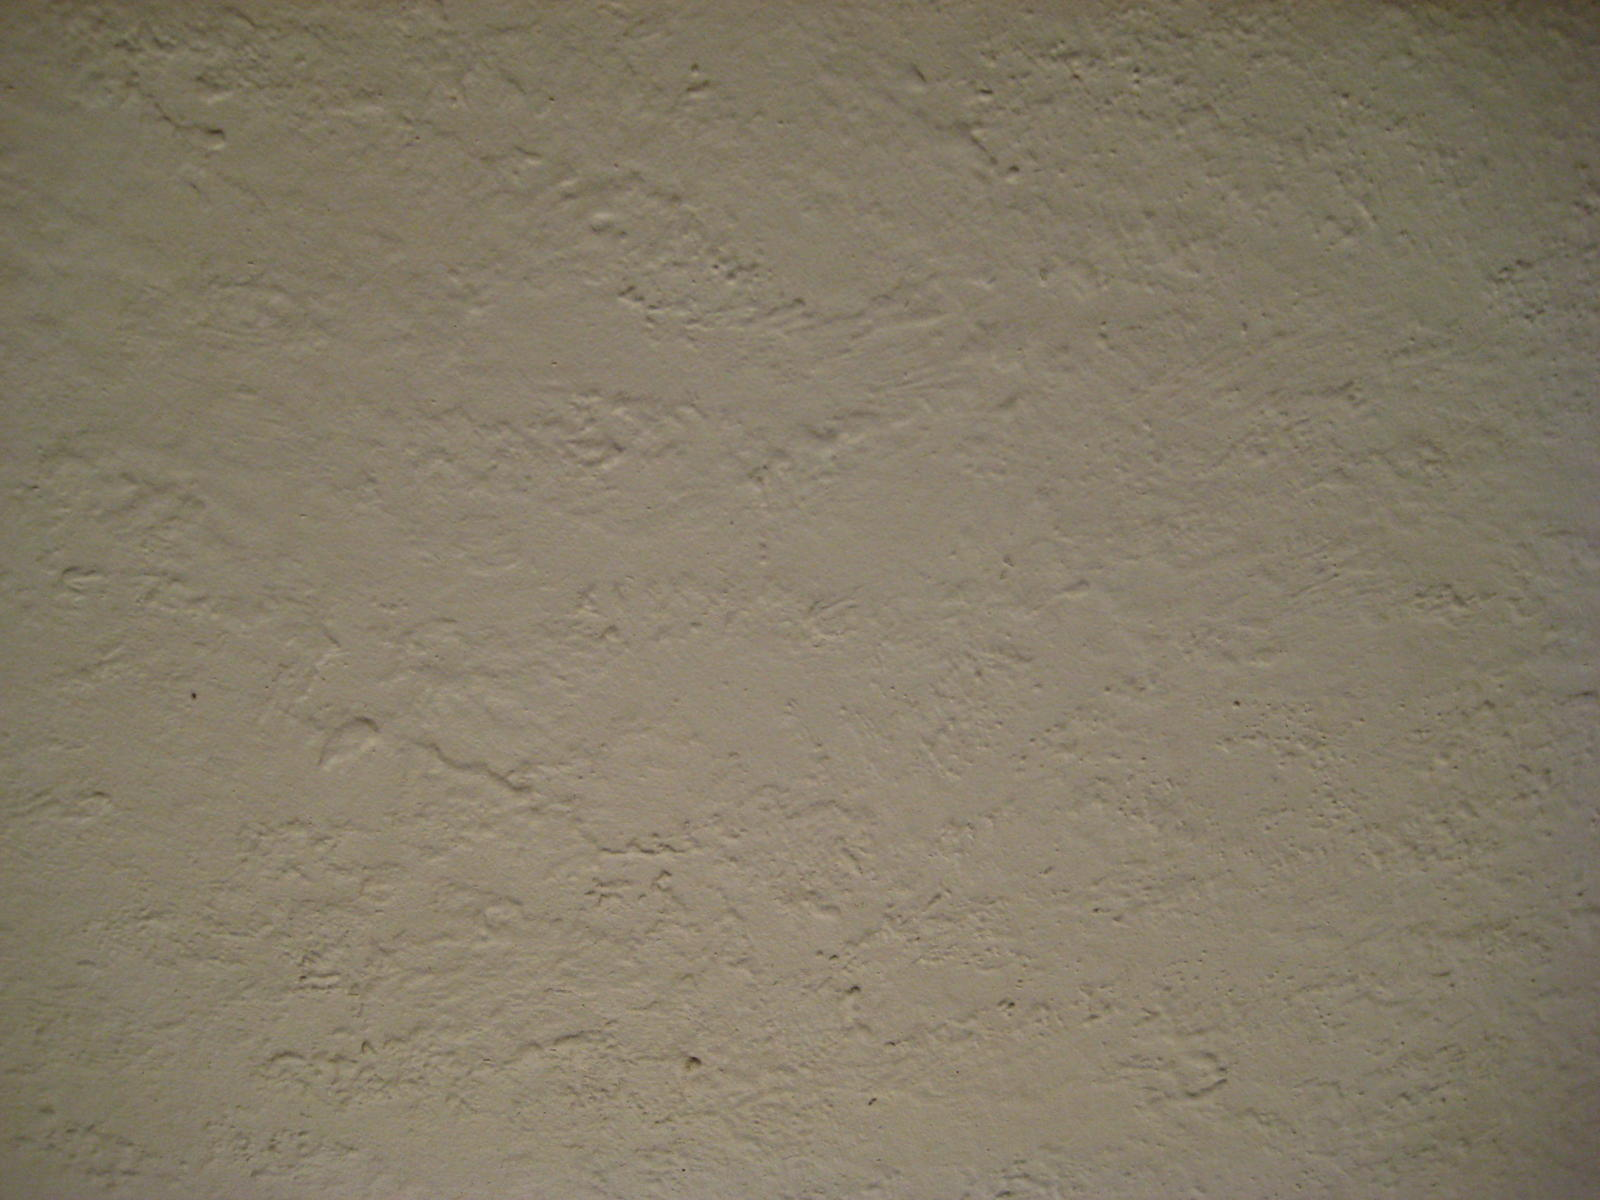 Textured wallpaper ceiling - Textured wallpaper on ceiling ...